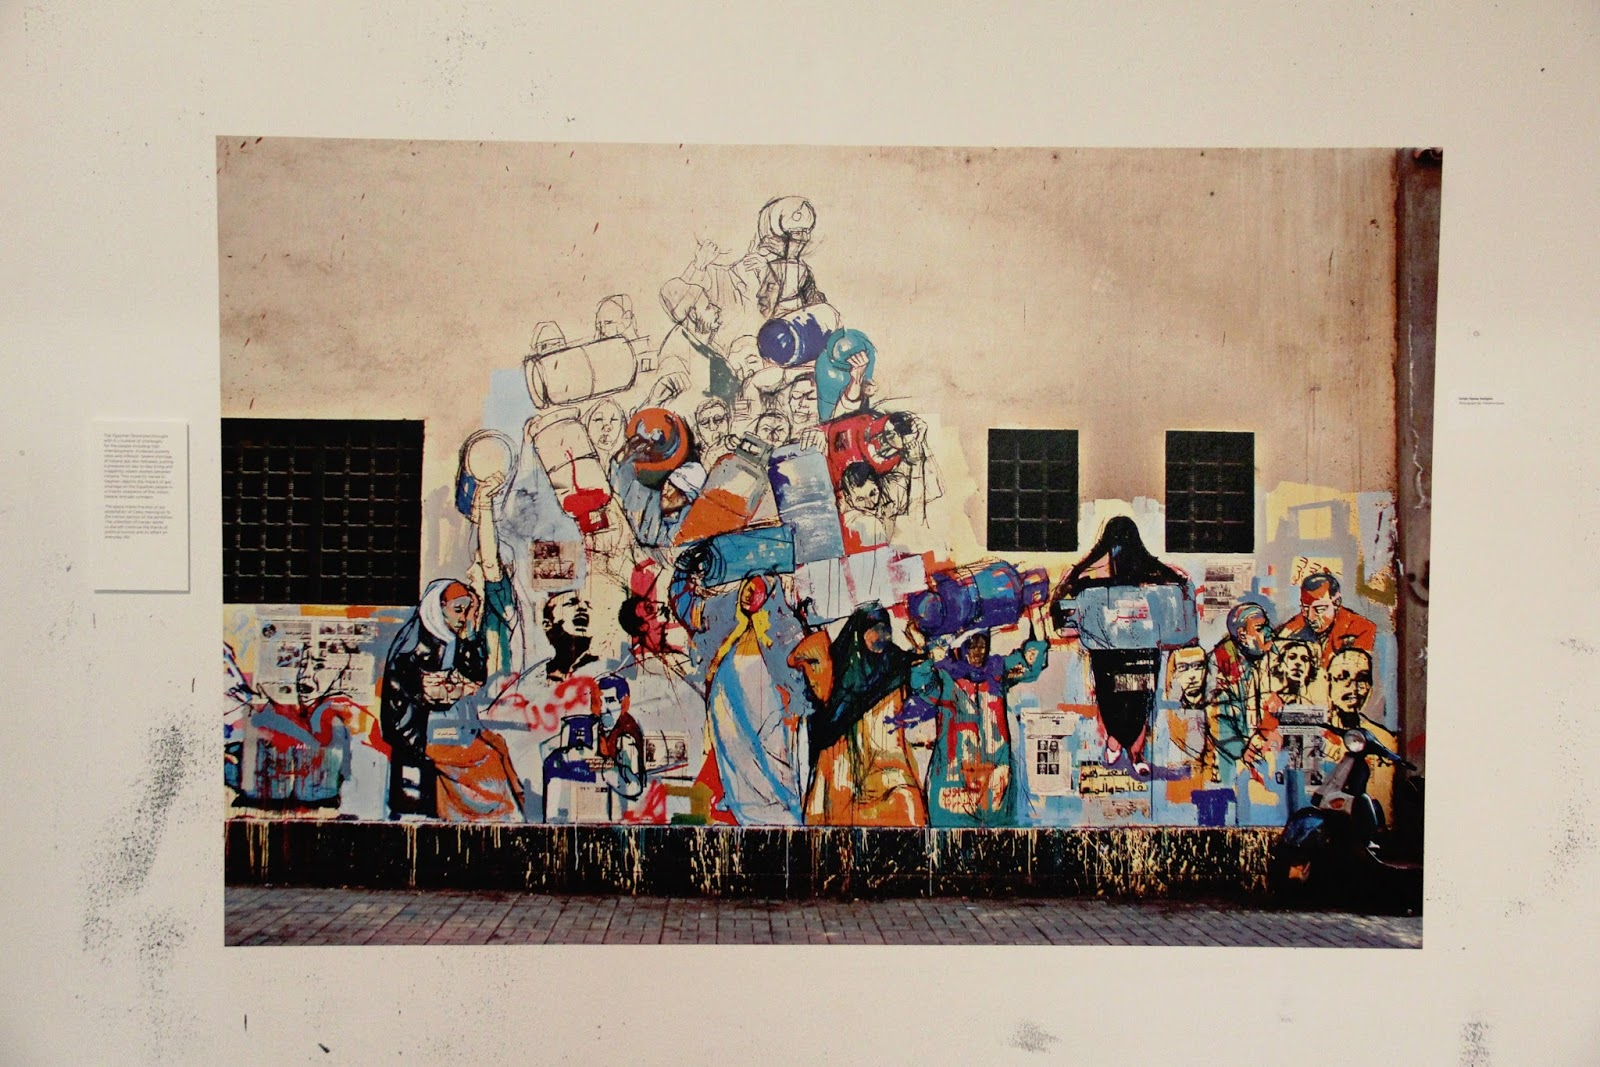 Graffiti art representing the voices of the people.